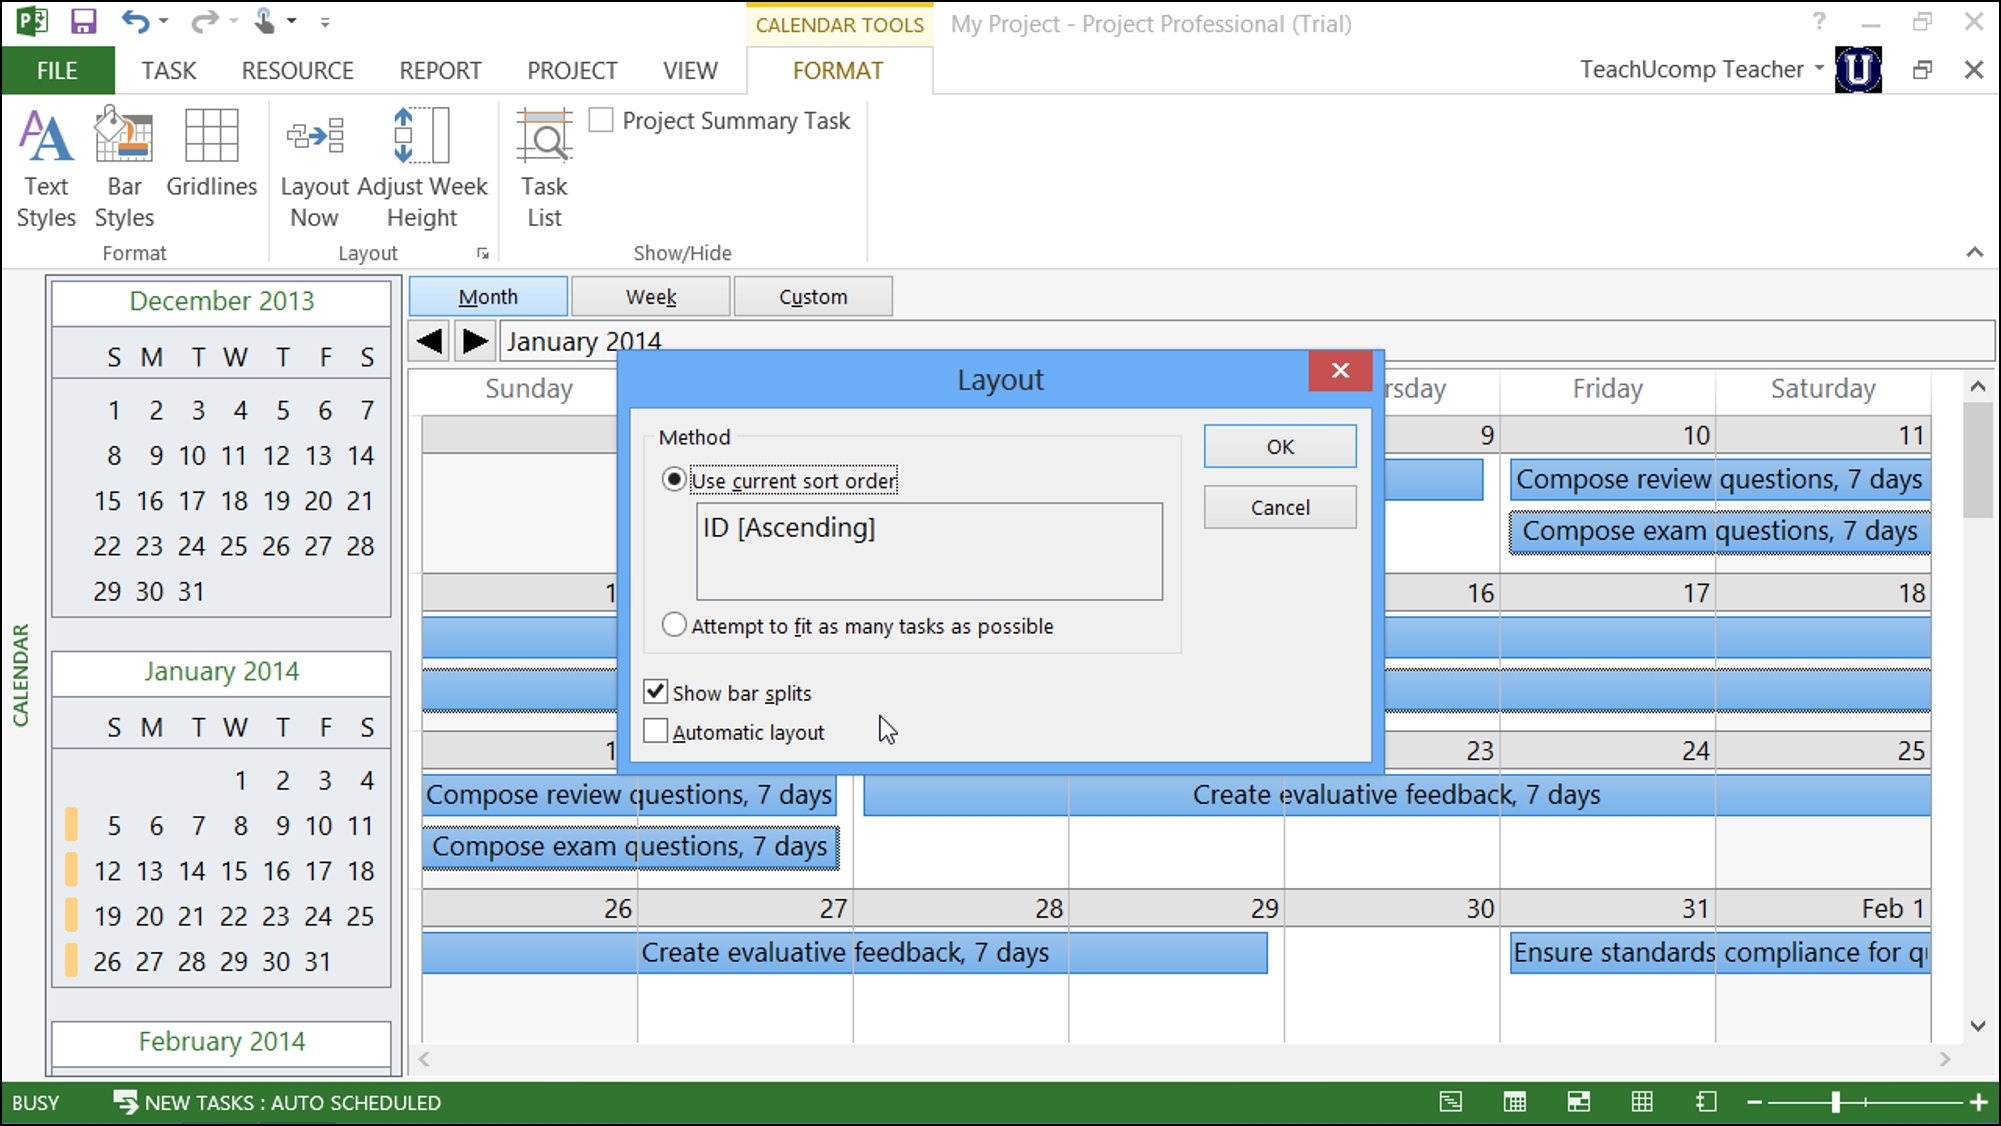 Calendar View In Microsoft Project - Tutorial